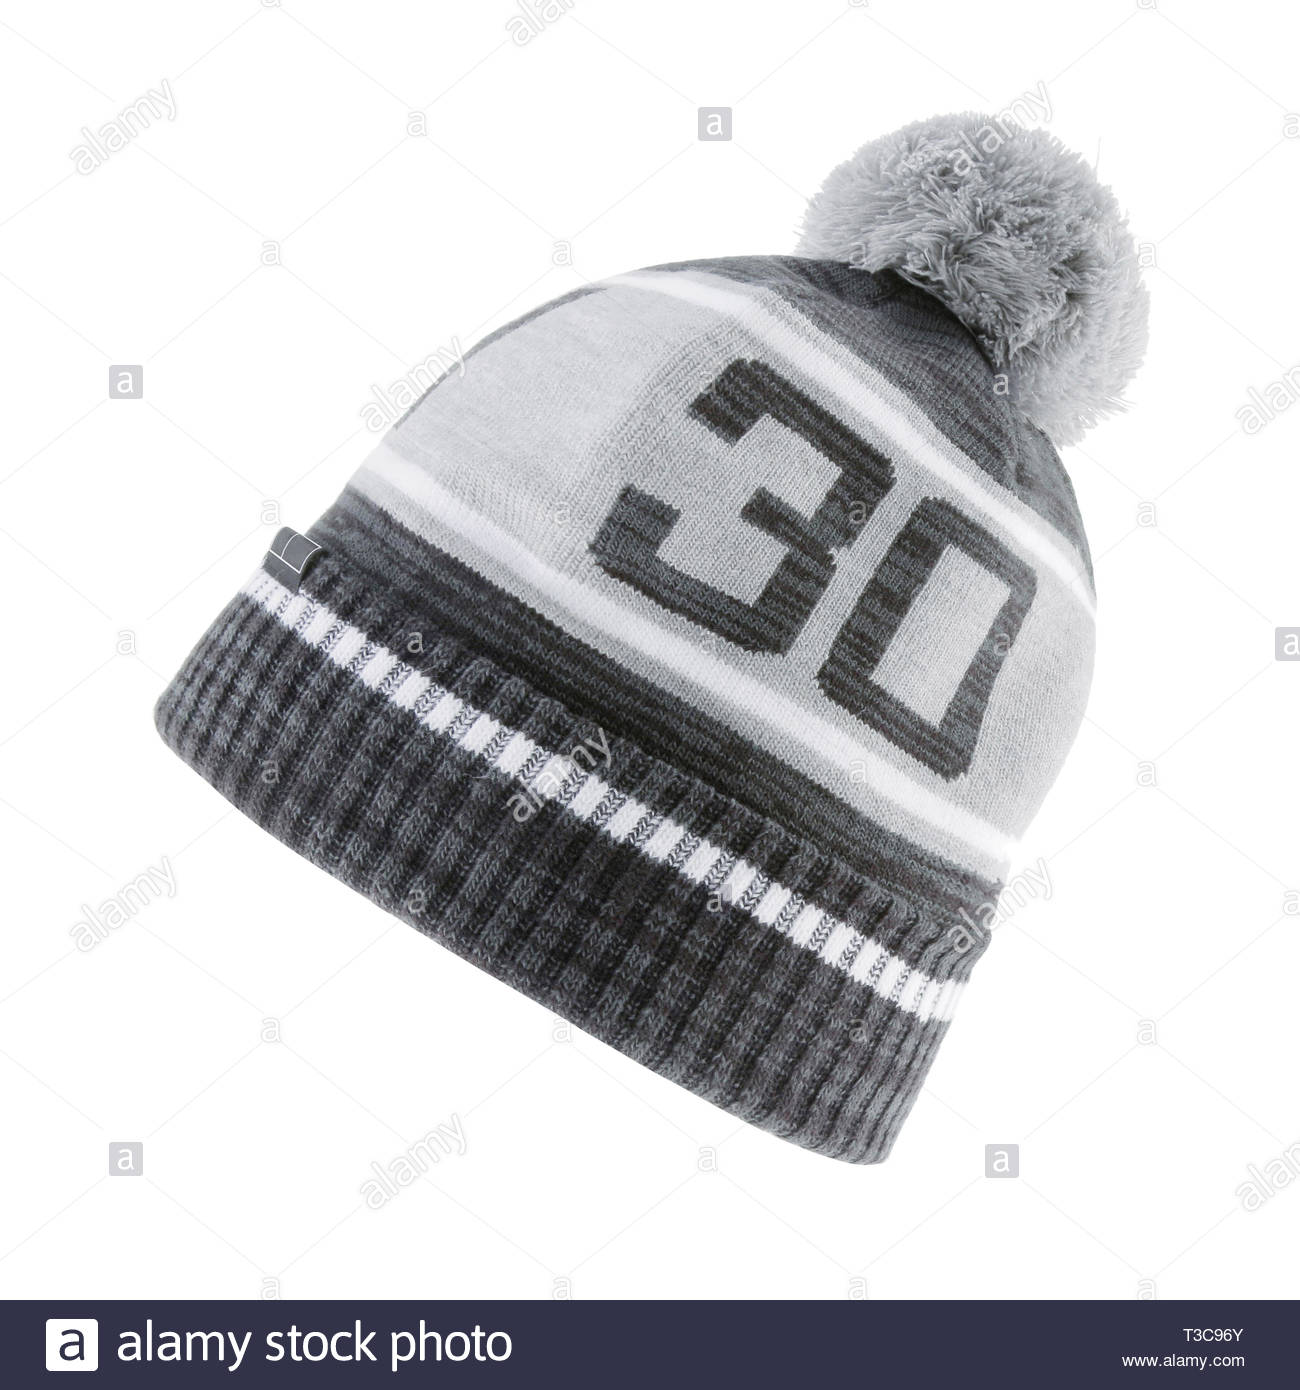 Black and Heather Gray Ski Knitted Hat with a Faux Fur Pompom Isolated on White Background. Outdoors Casual Two-Tone Knit Bobble Hat with Pattern and  - Stock Image